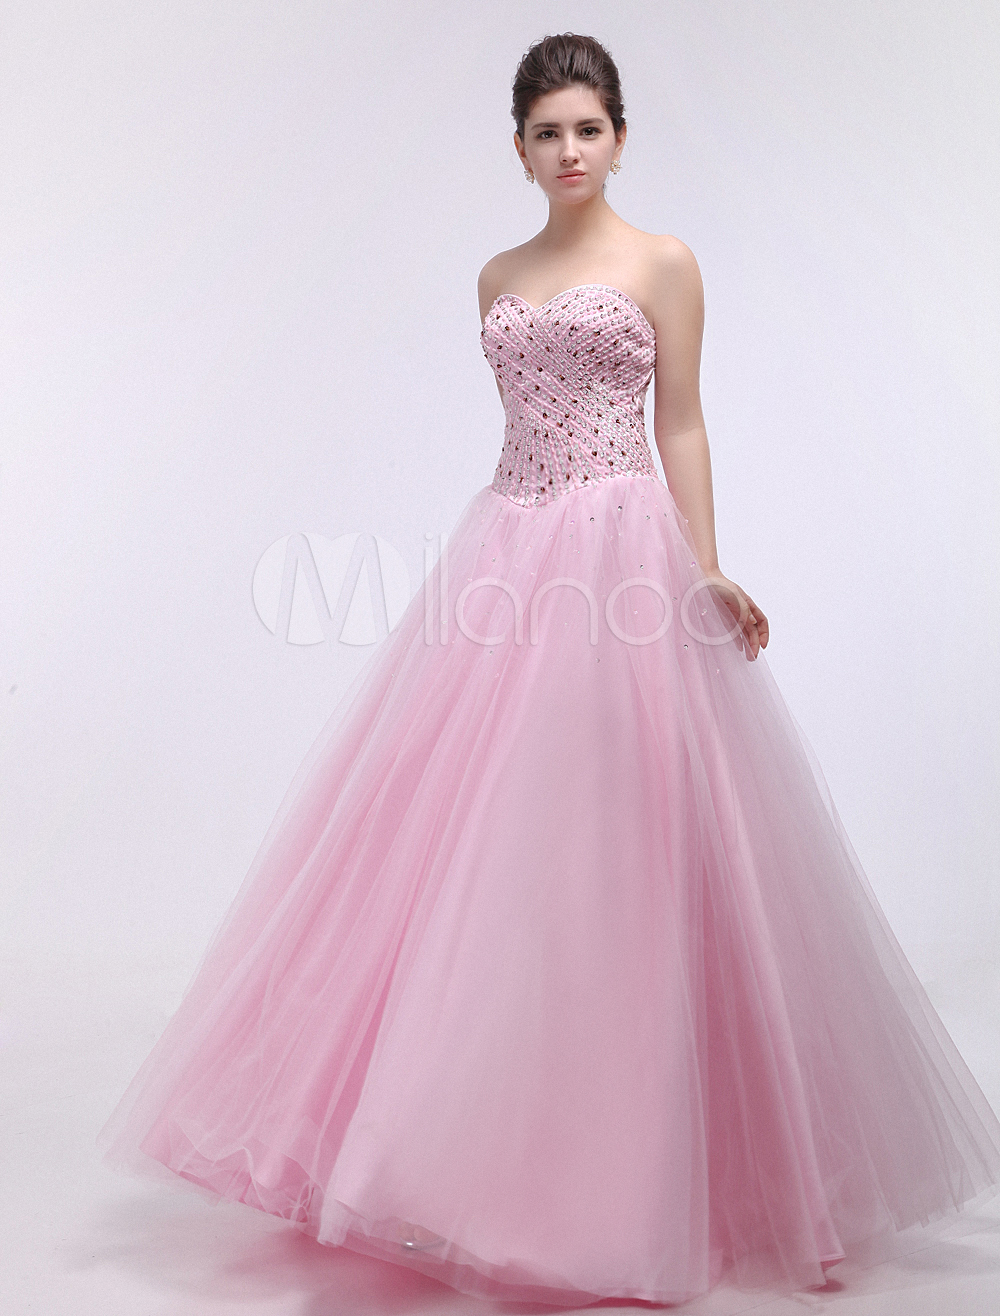 Modern Pink Sweetheart Strapless Sequin A-line Tulle Prom Dress